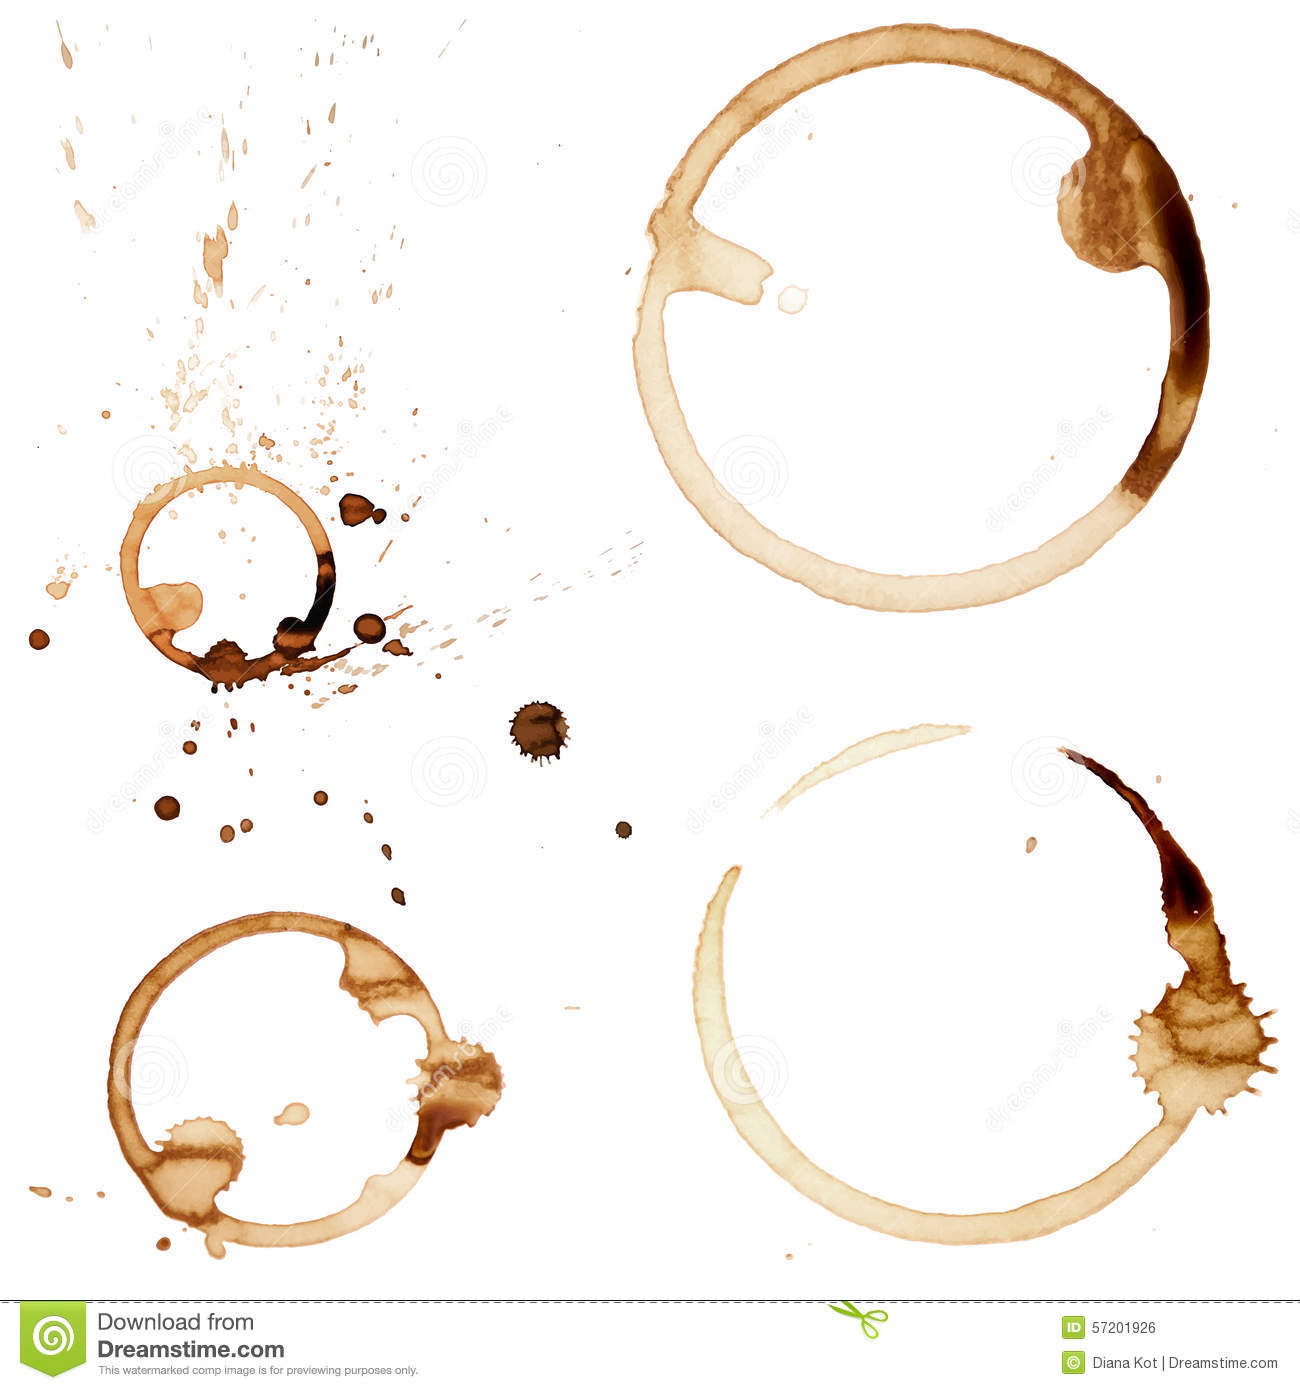 Coffee Stain Rings Vector Stock Vector - Image: 57201926